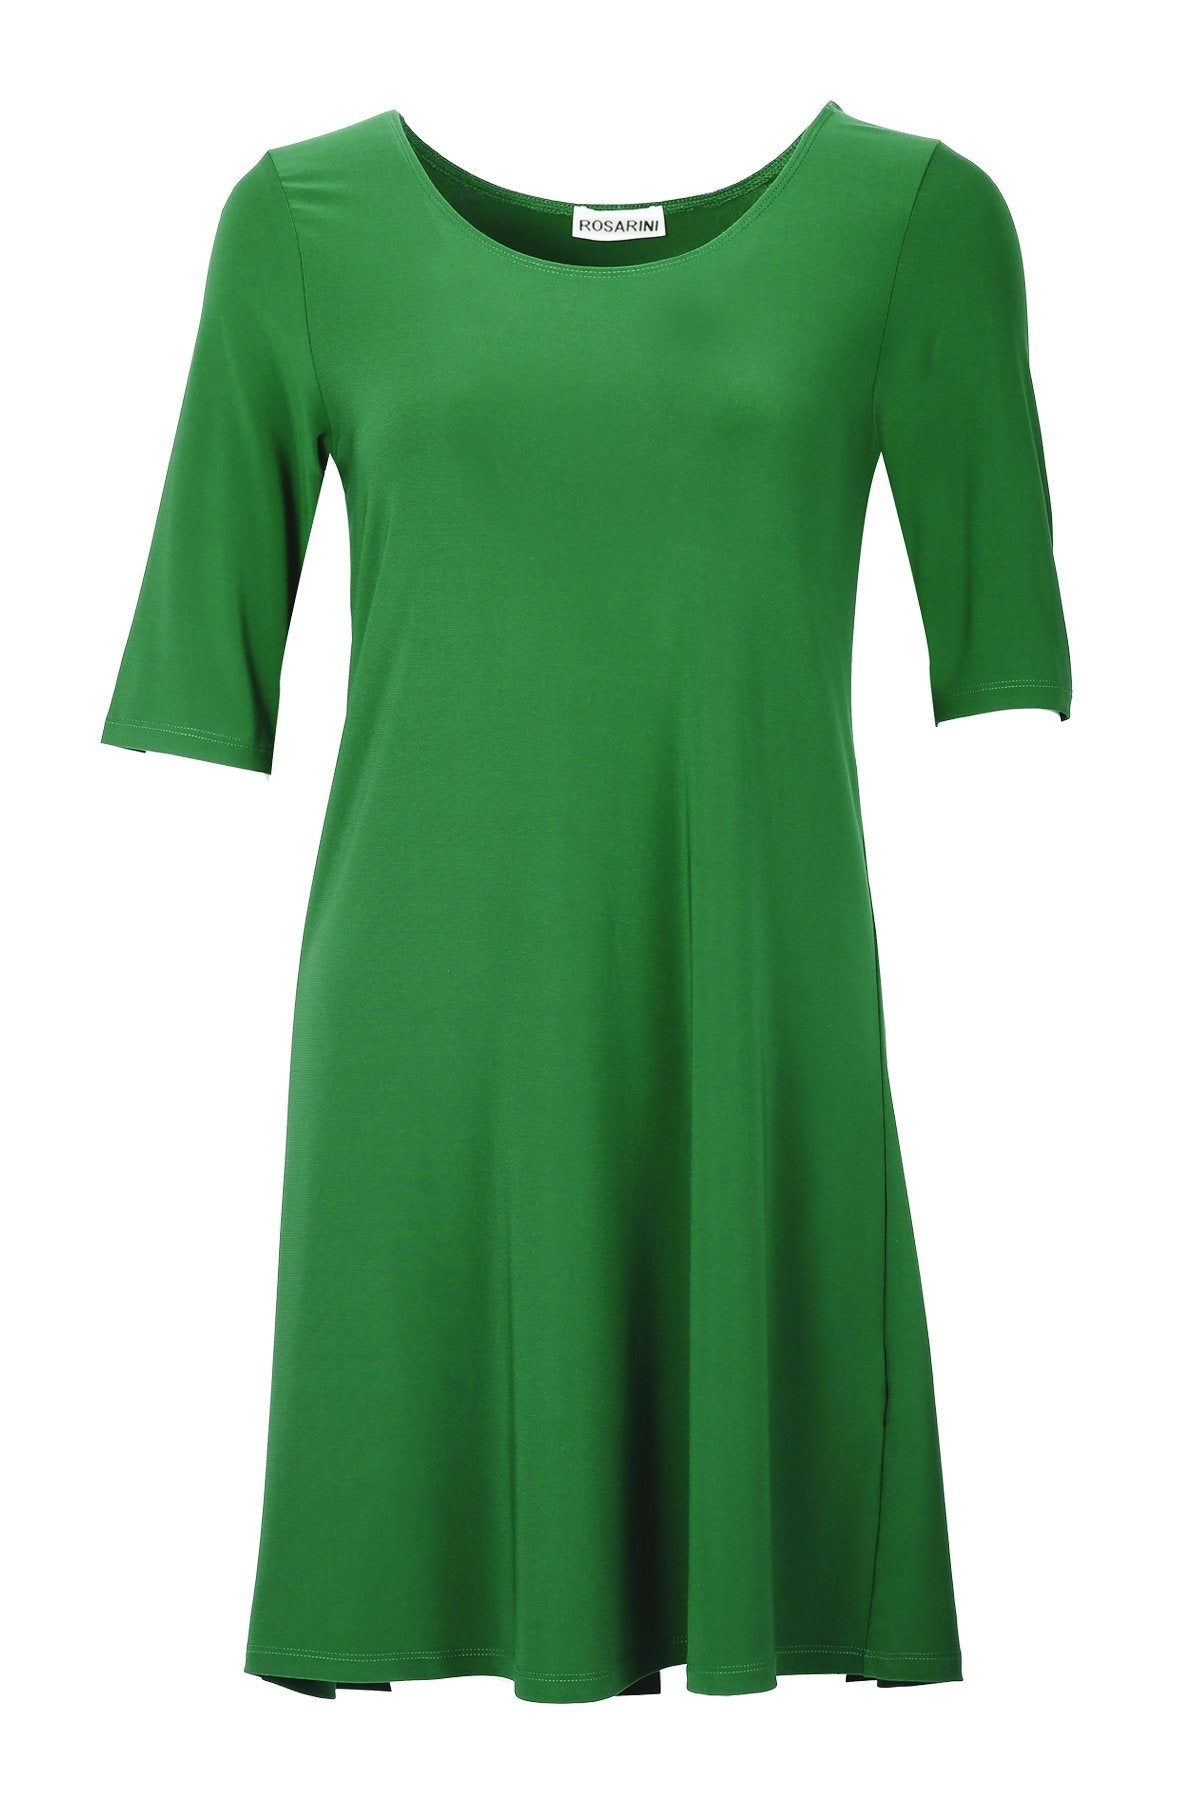 Women's Jade A Line Dress Top Rosarini